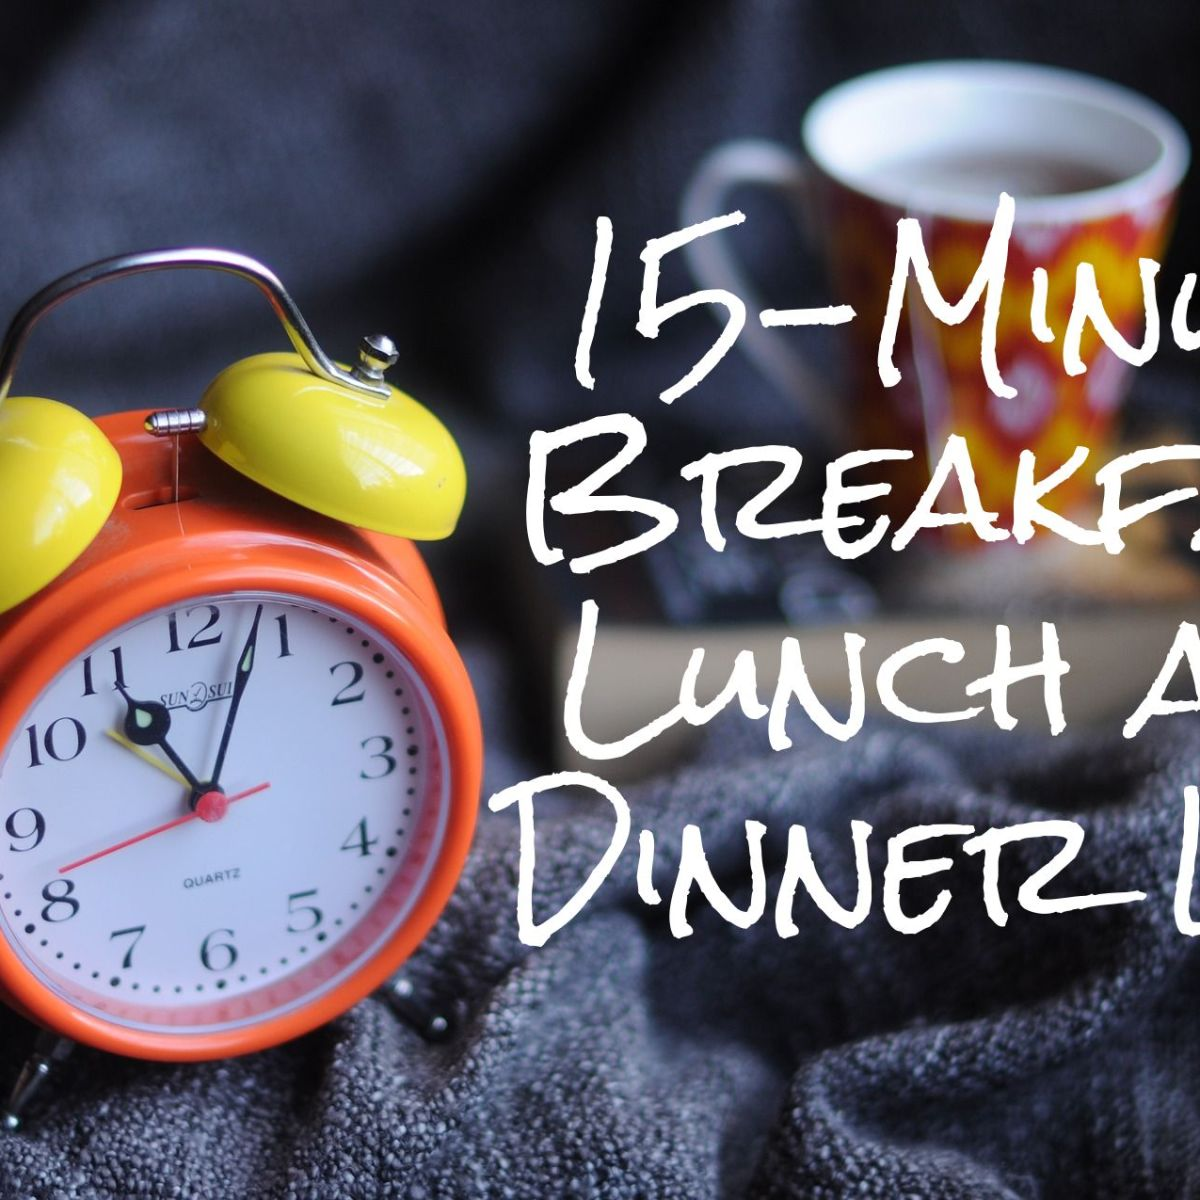 15-Minute Breakfast Lunch and Dinner Idea